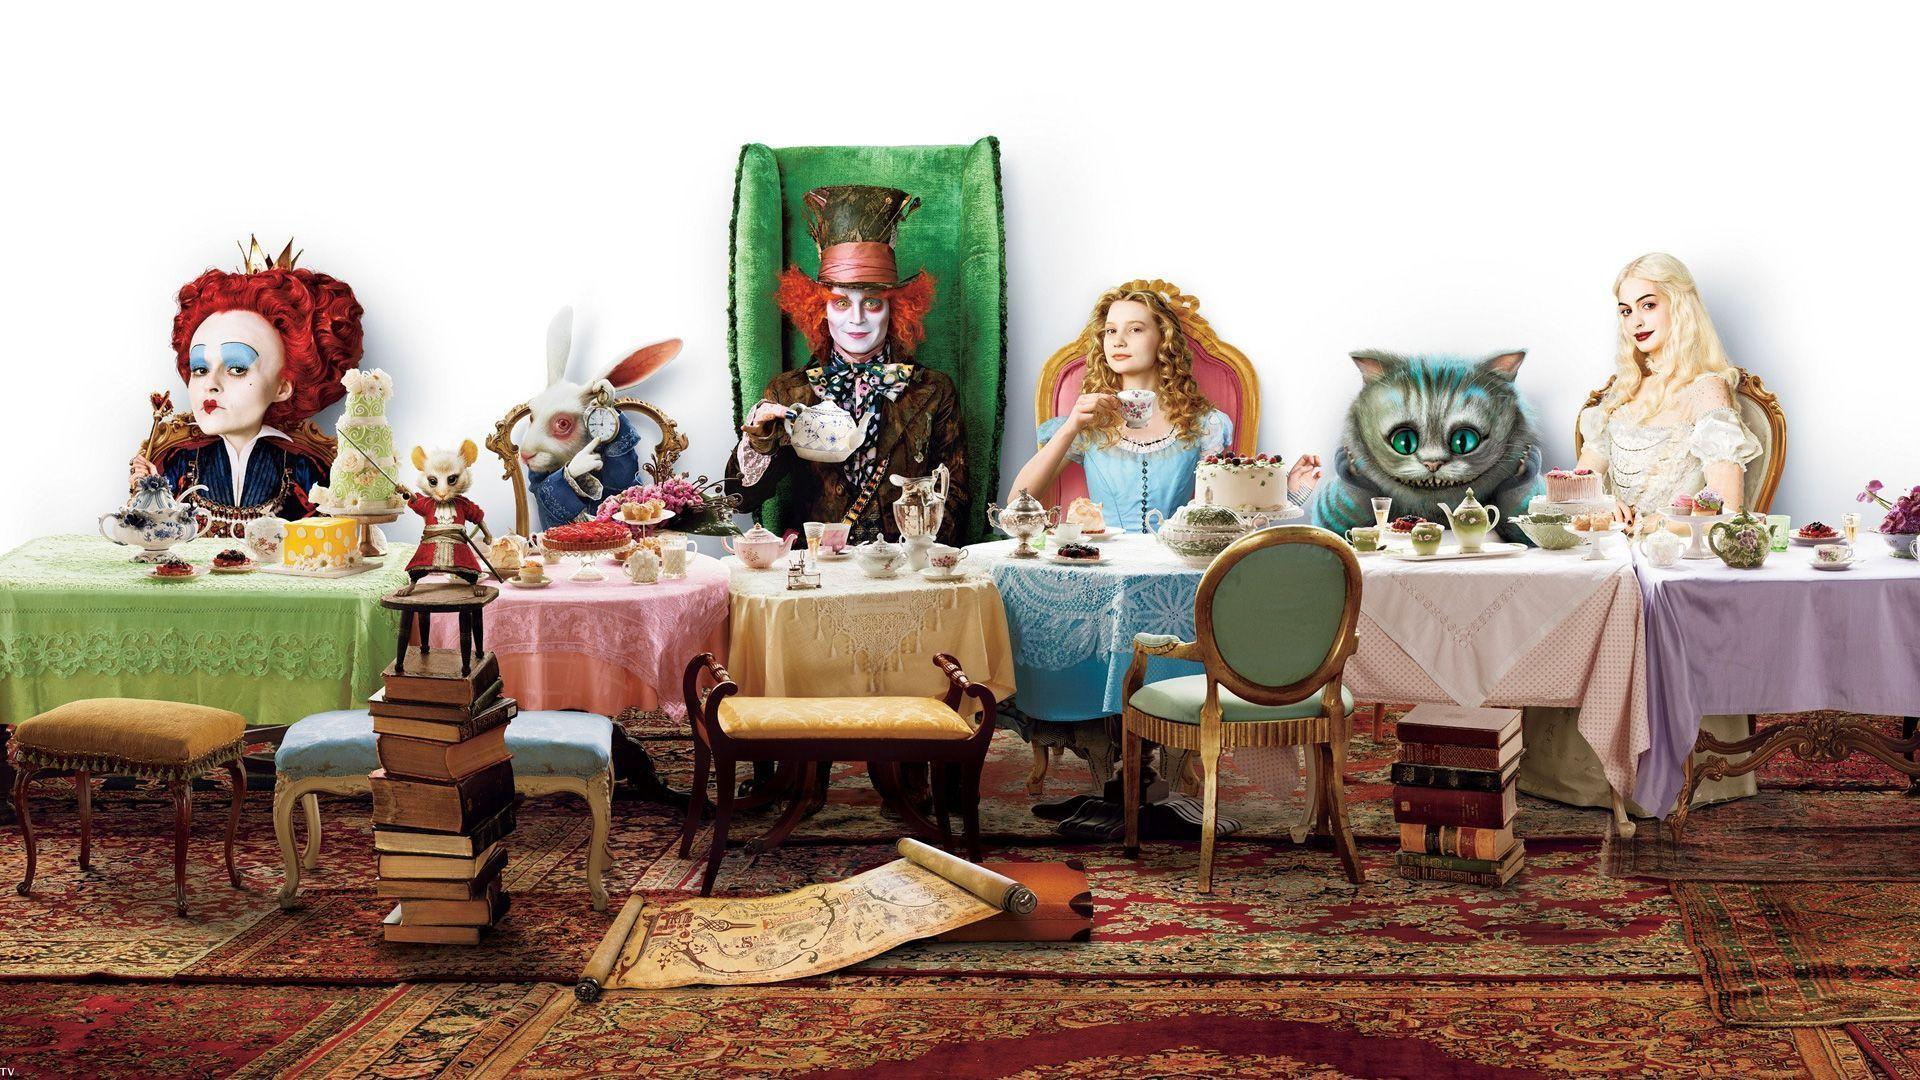 Alice in Wonderland HD Multi Monitor Wallpapers | HD Wallpapers